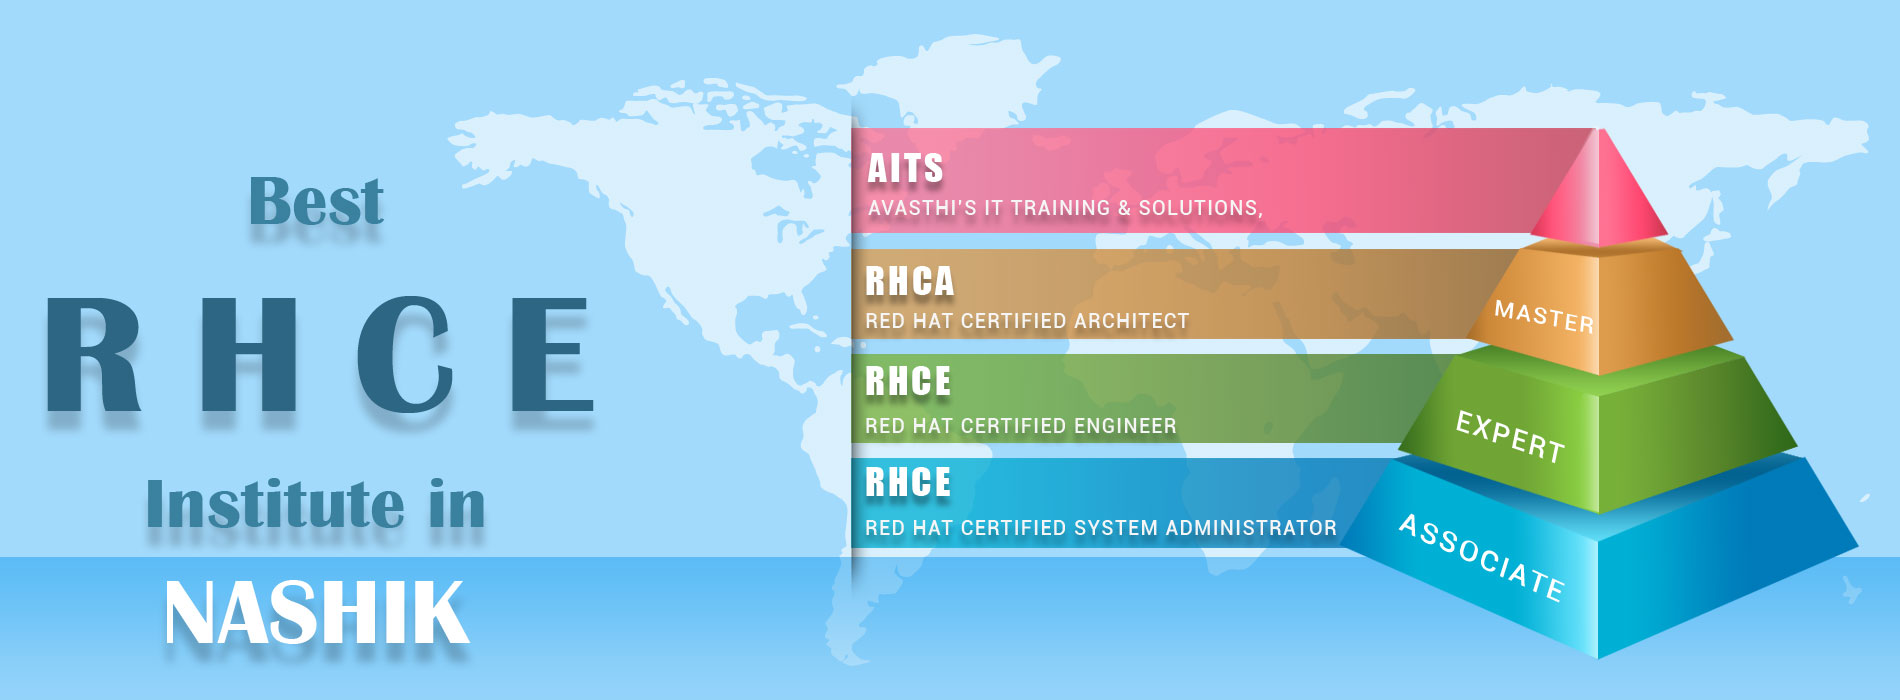 RHCE Training In Nashik